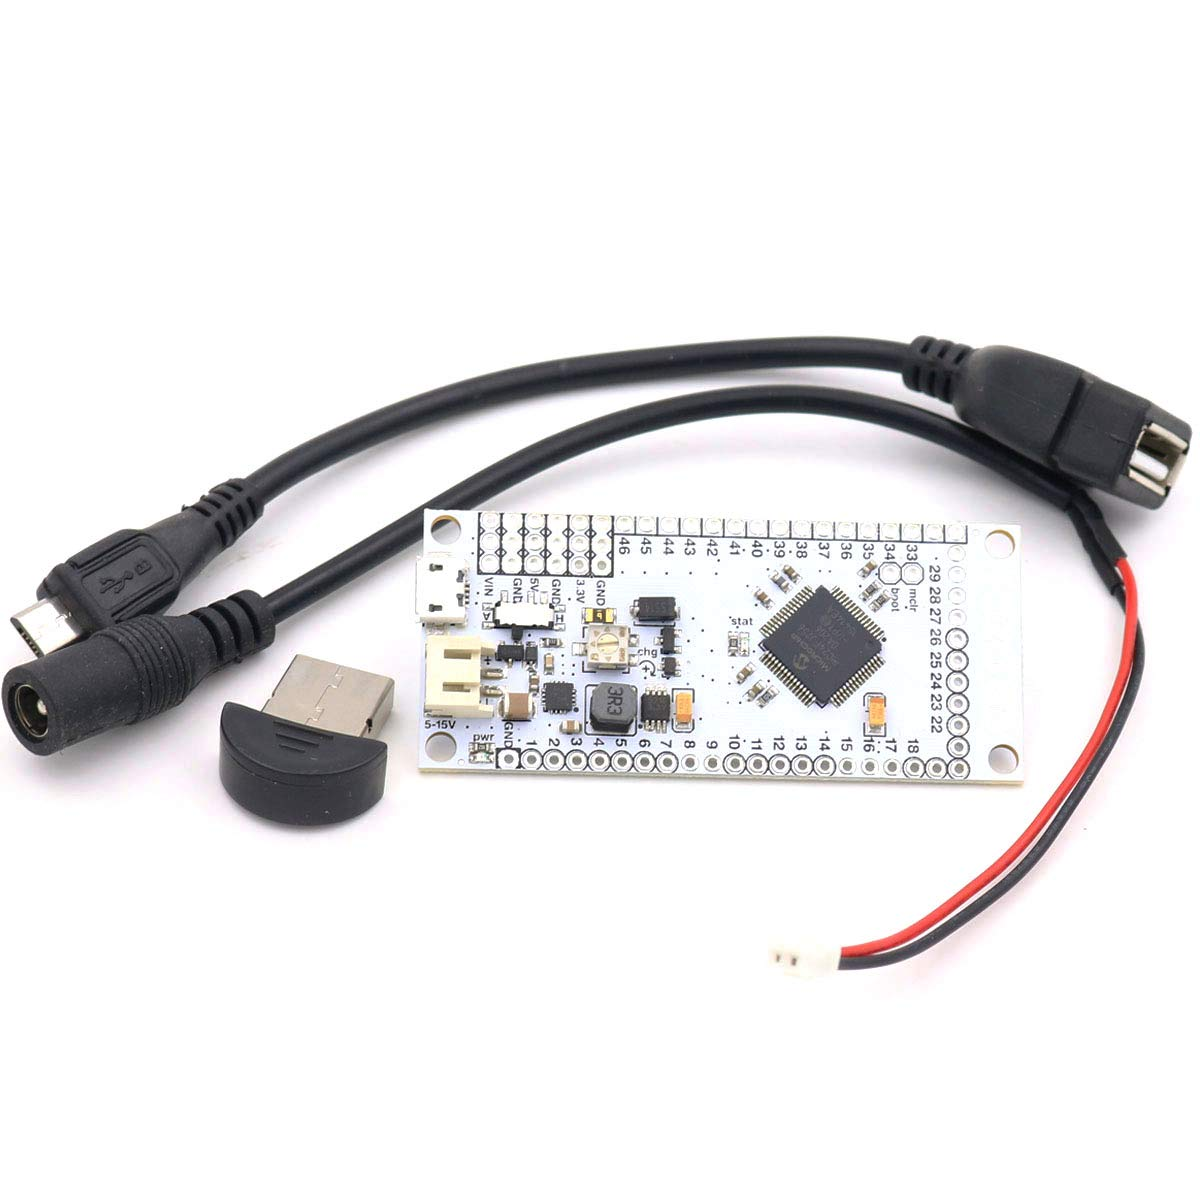 Asiawill Ioio OTG Android Kit Module Control Board w//adaptateur Bluetooth